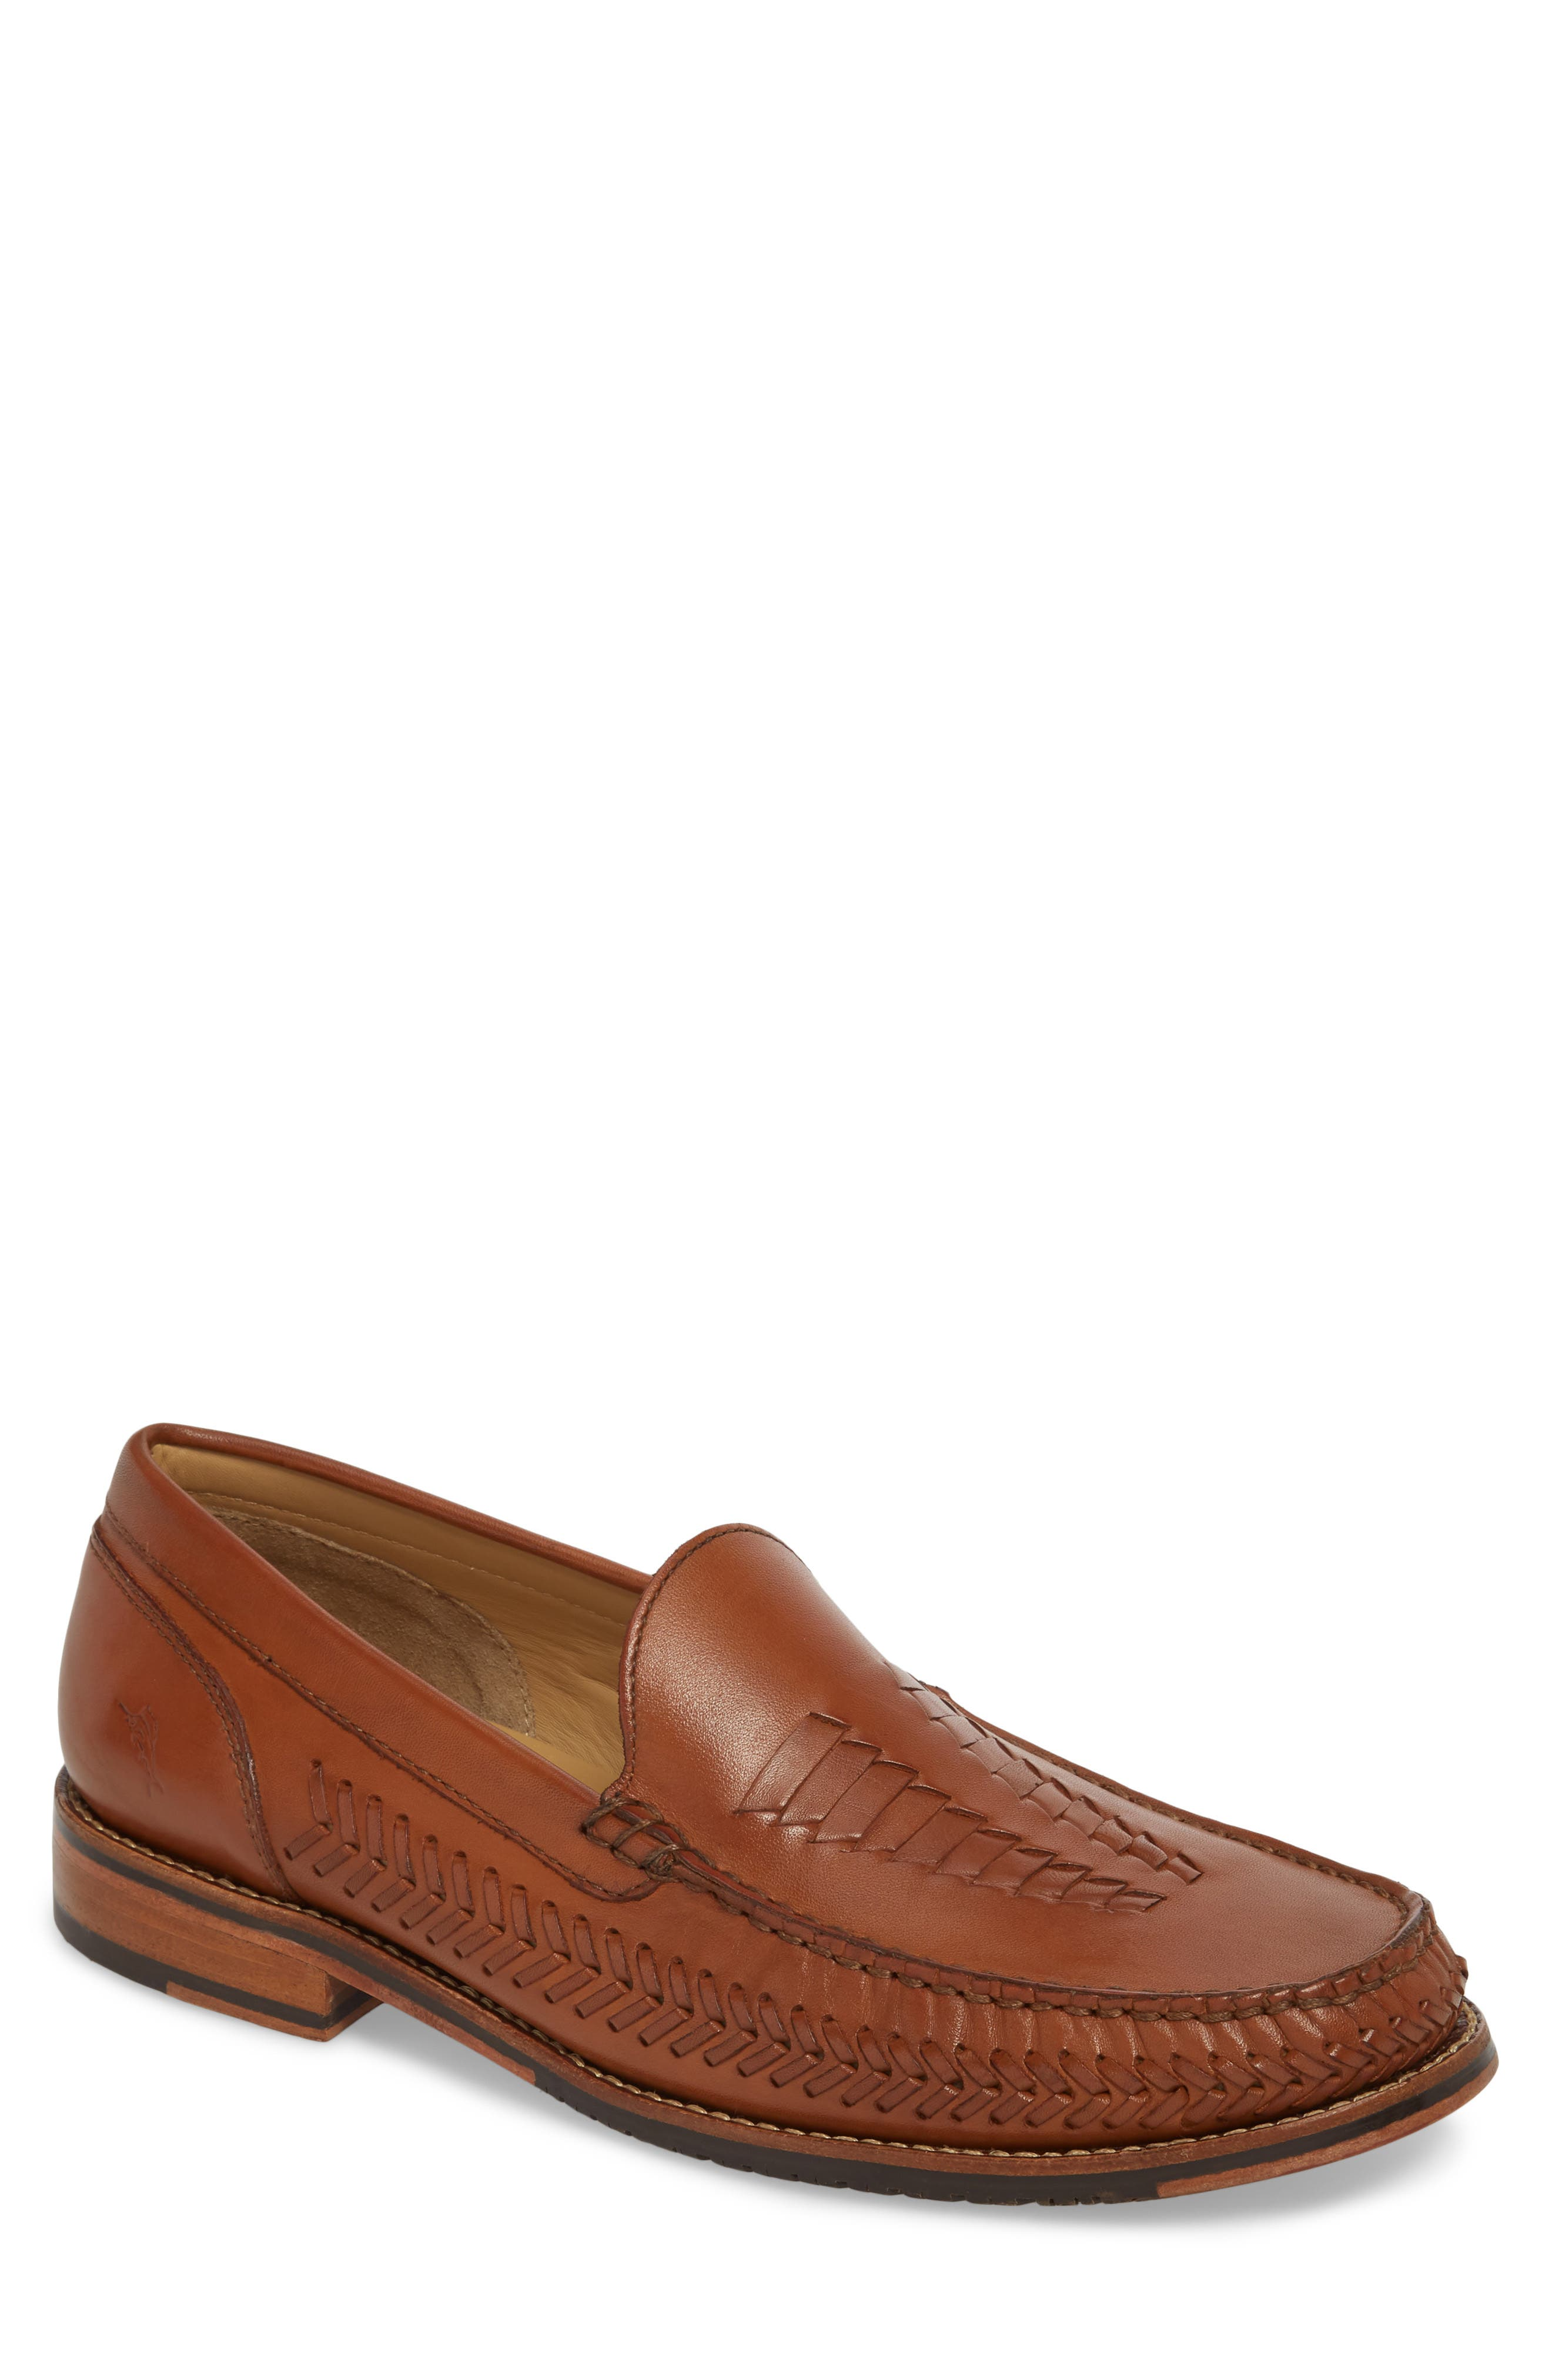 Hasslington Woven Venetian Loafer,                             Main thumbnail 1, color,                             TAN LEATHER